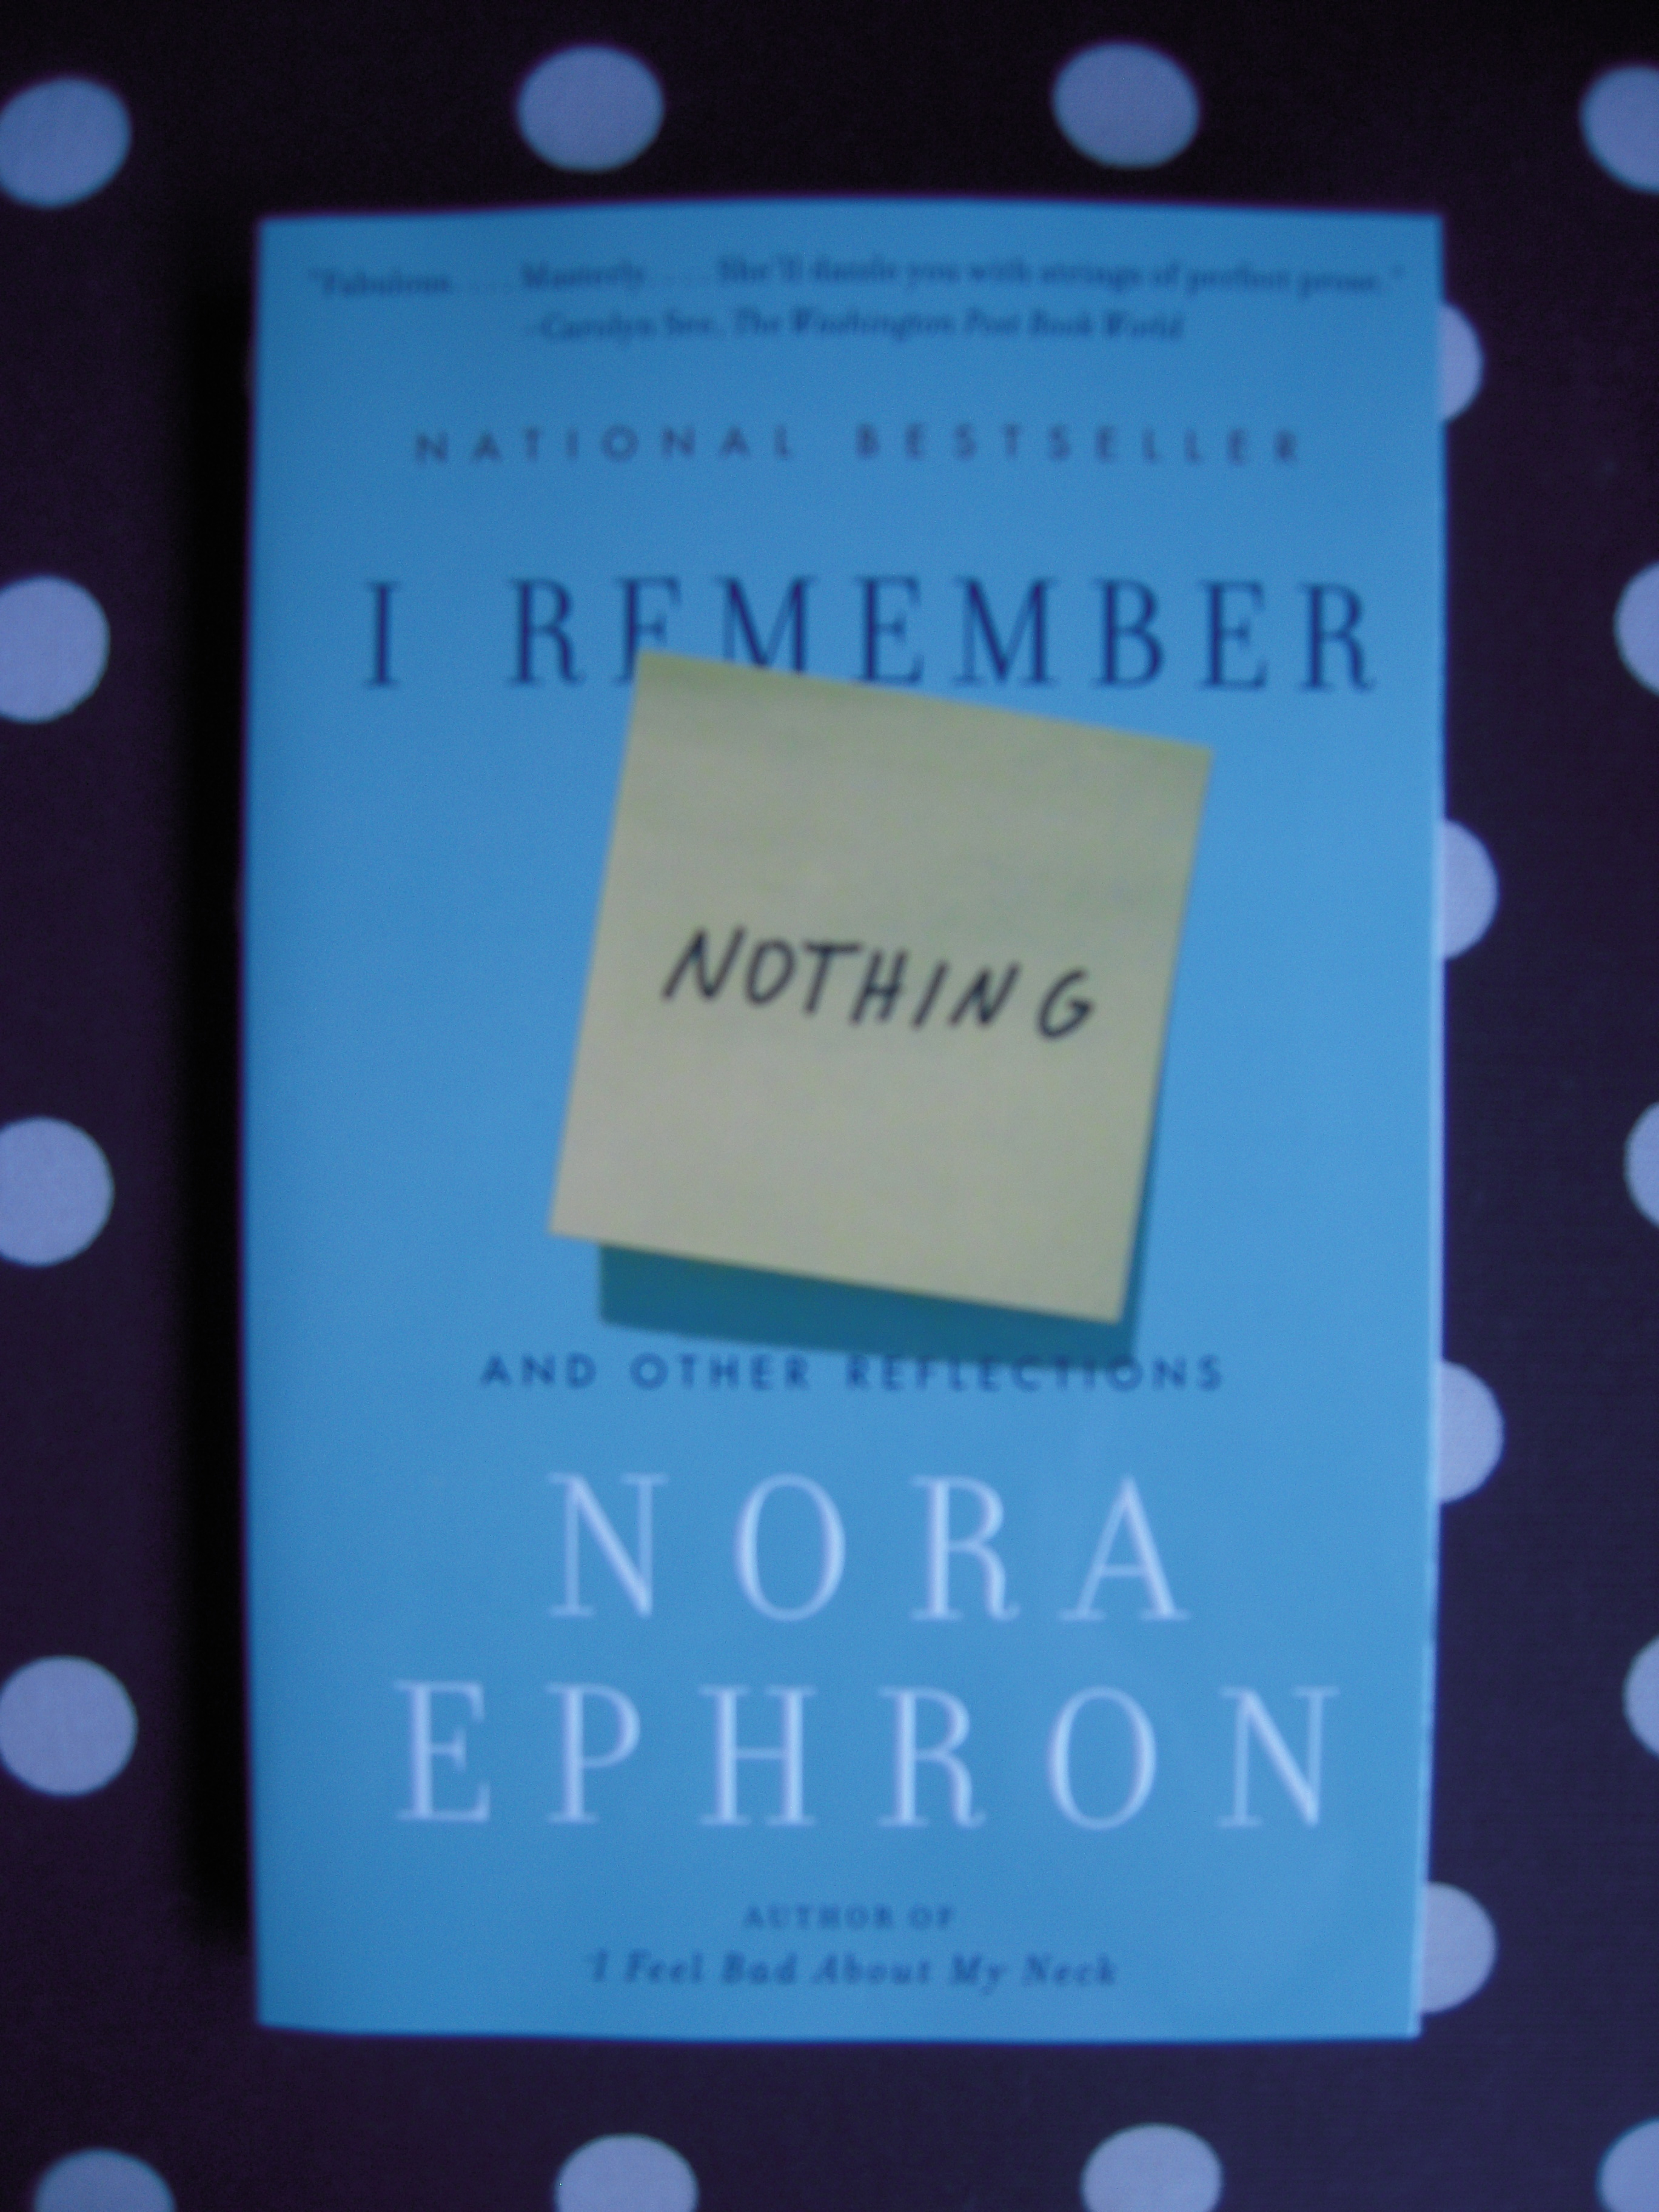 nora ephron essays on aging Nora ephron: the funniest feminist nora ephron passed jan morris in her essays who saw it as demeaning to negatively portray the process of aging.